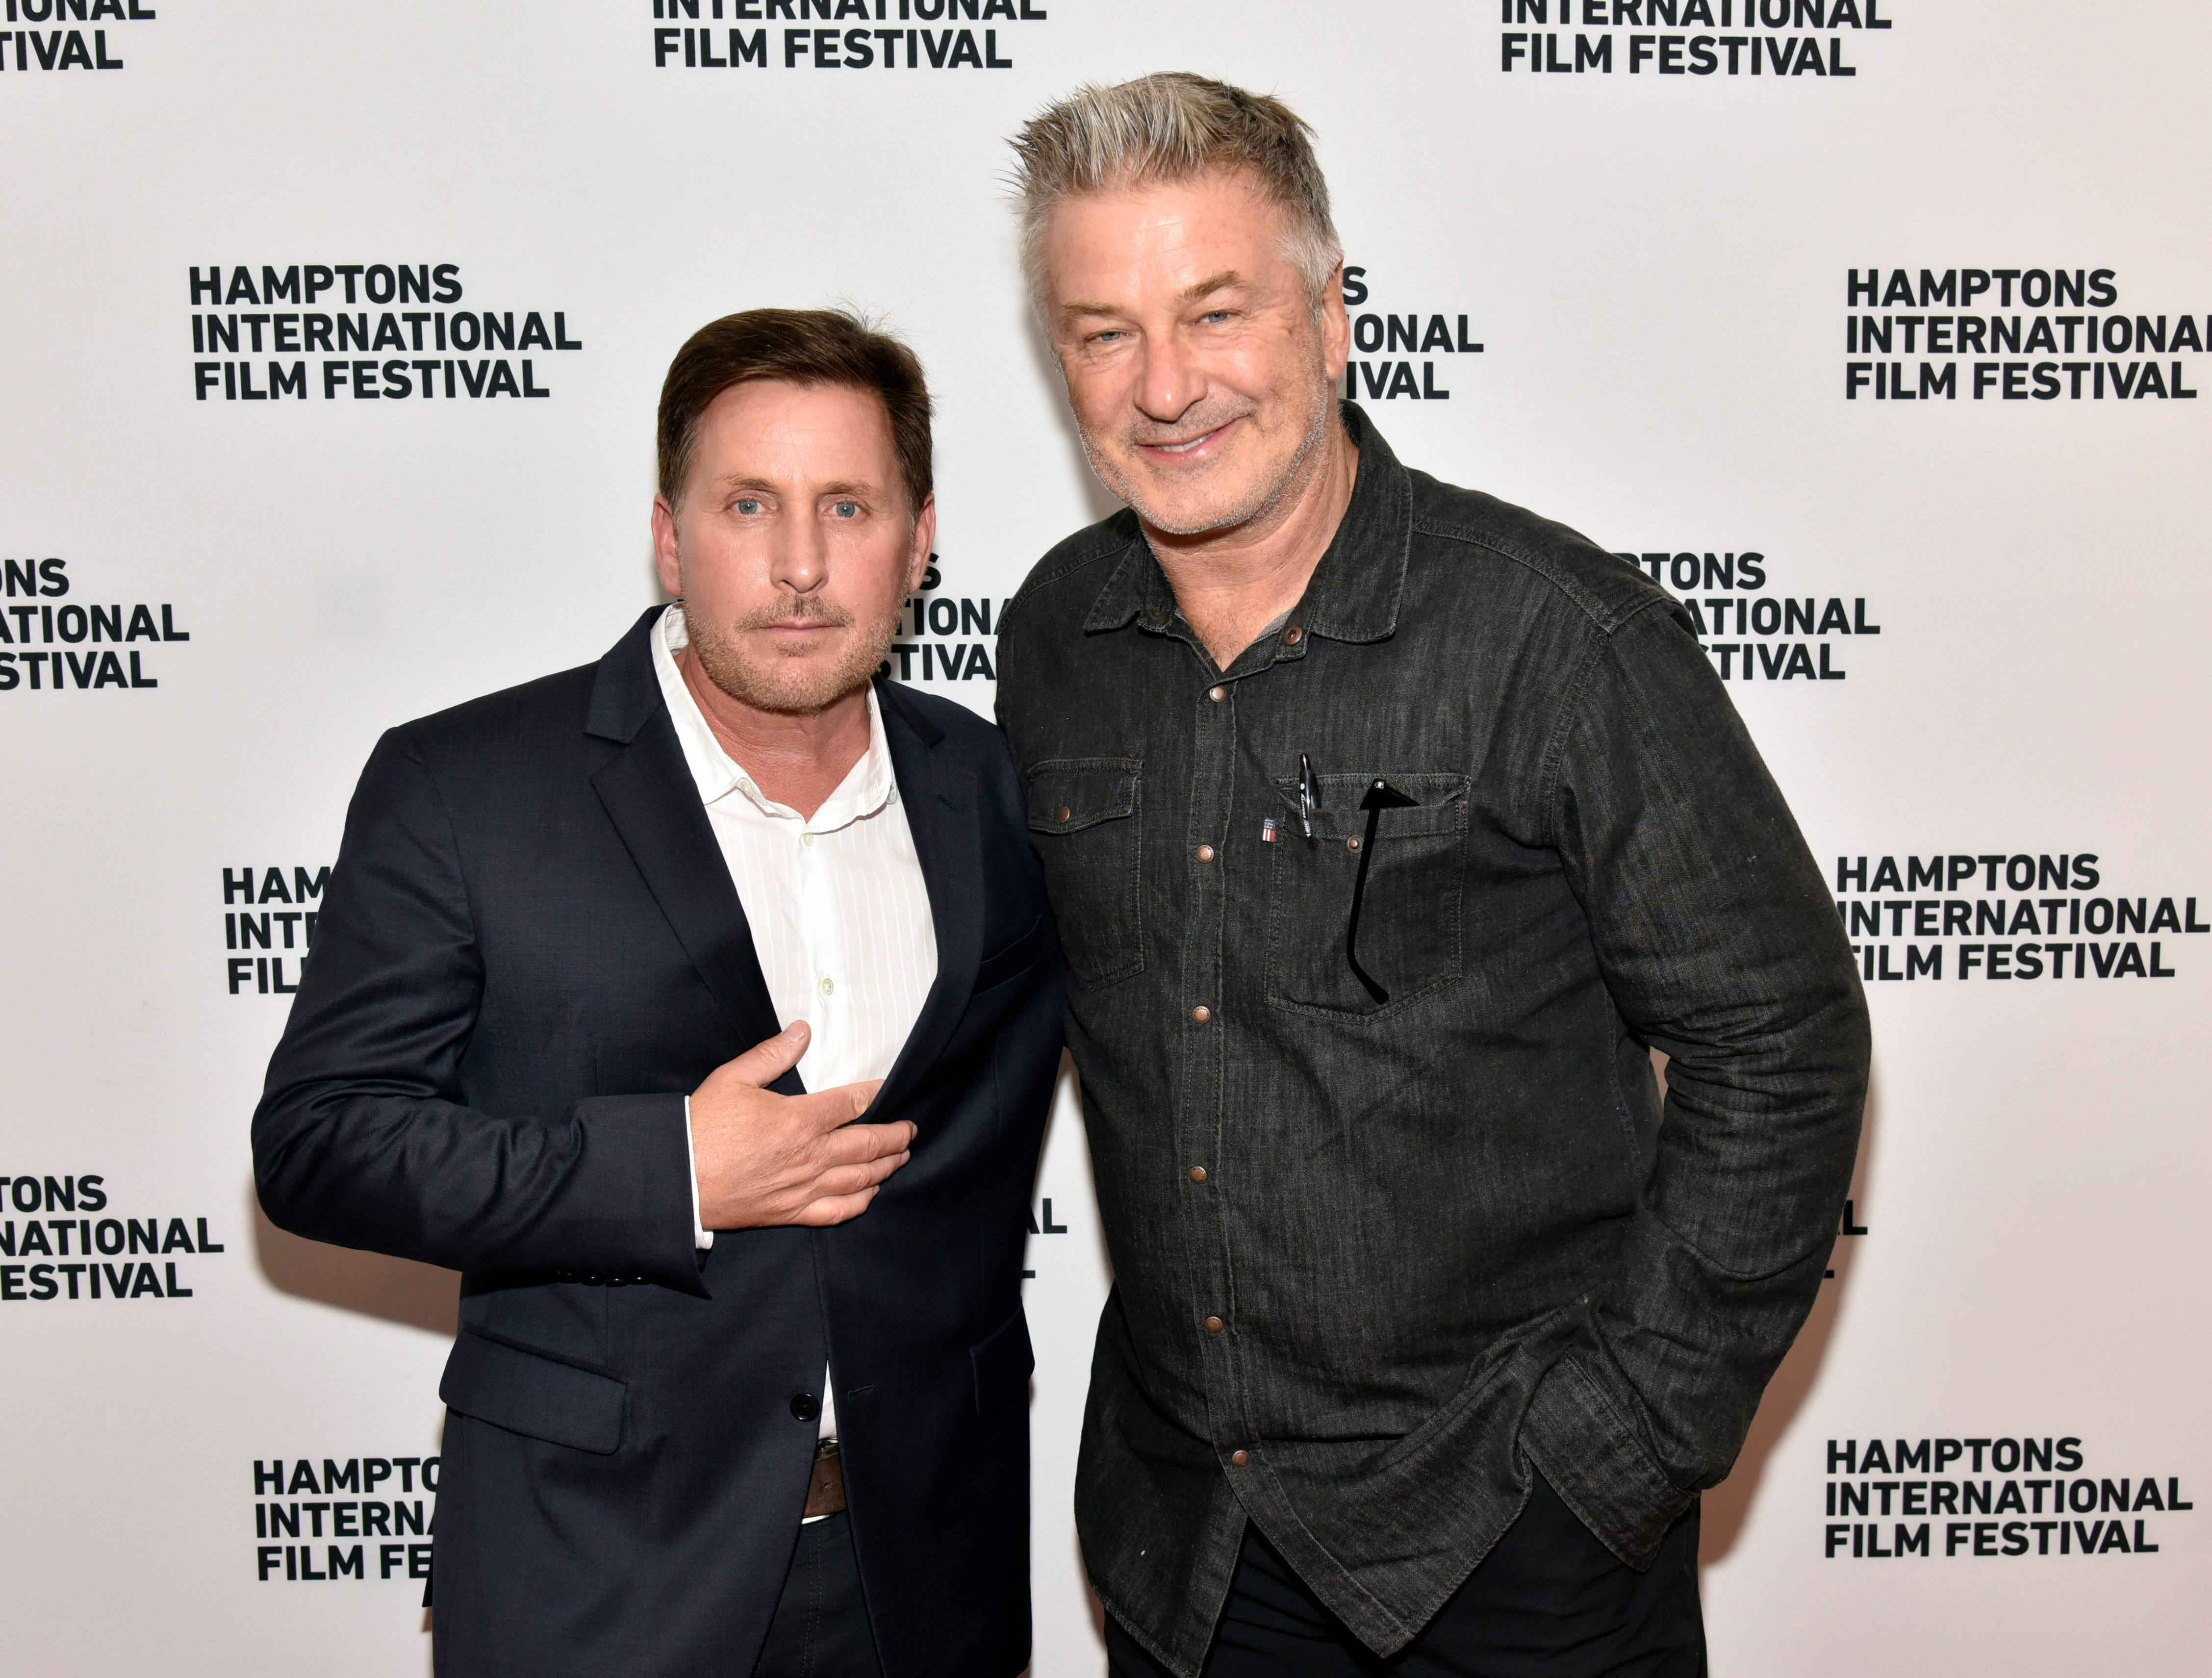 Emilio Estevez (left) and HIFF co-chairman Alec Baldwin attend the Hamptons International Film Festival 2018 on October 6, 2018 in Sag Harbor, New York.